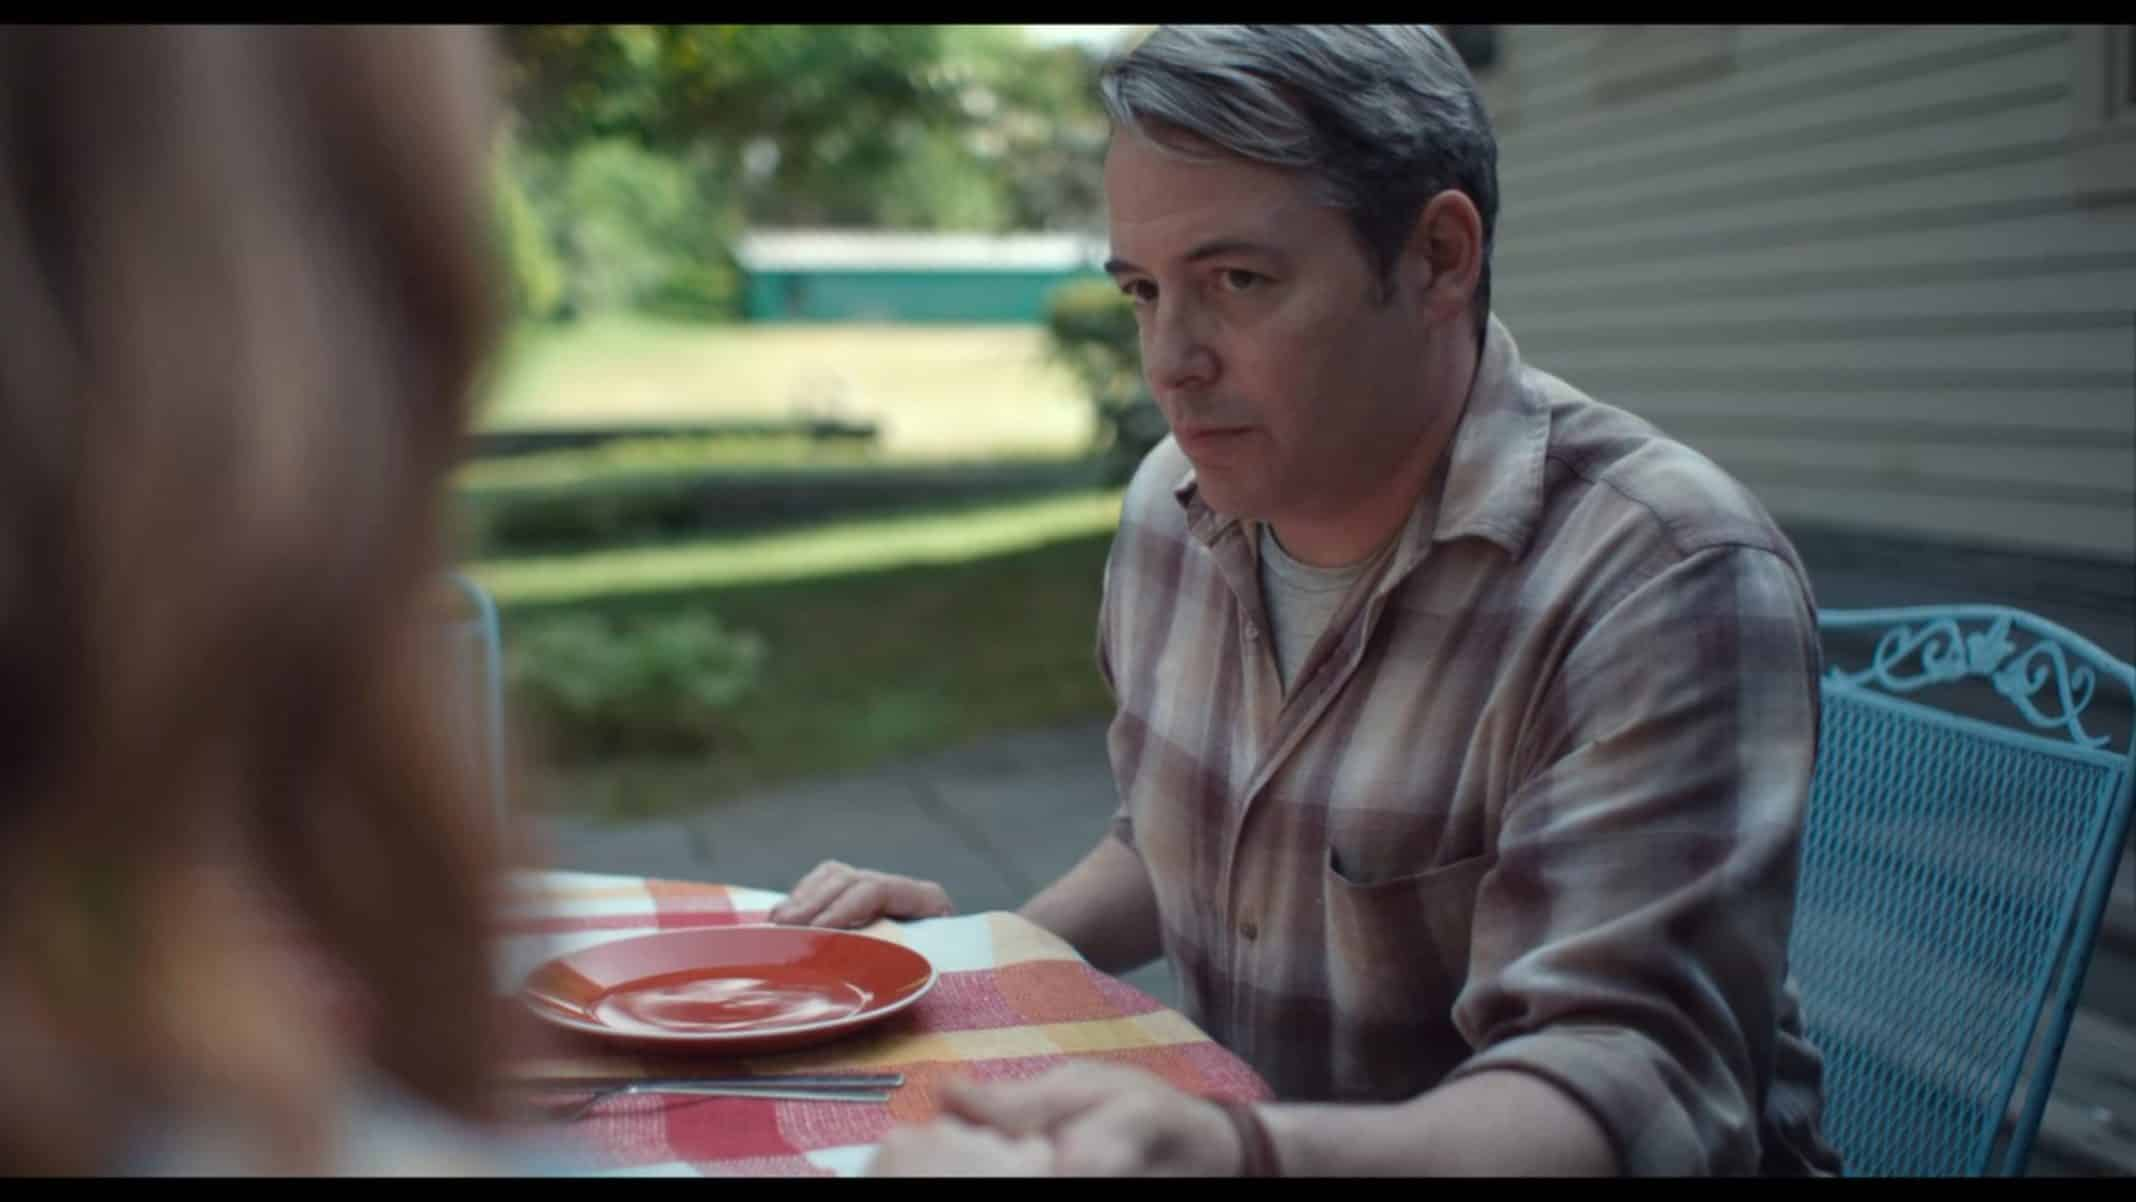 Murray (Matthew Broderick) having a meal with his daughter.